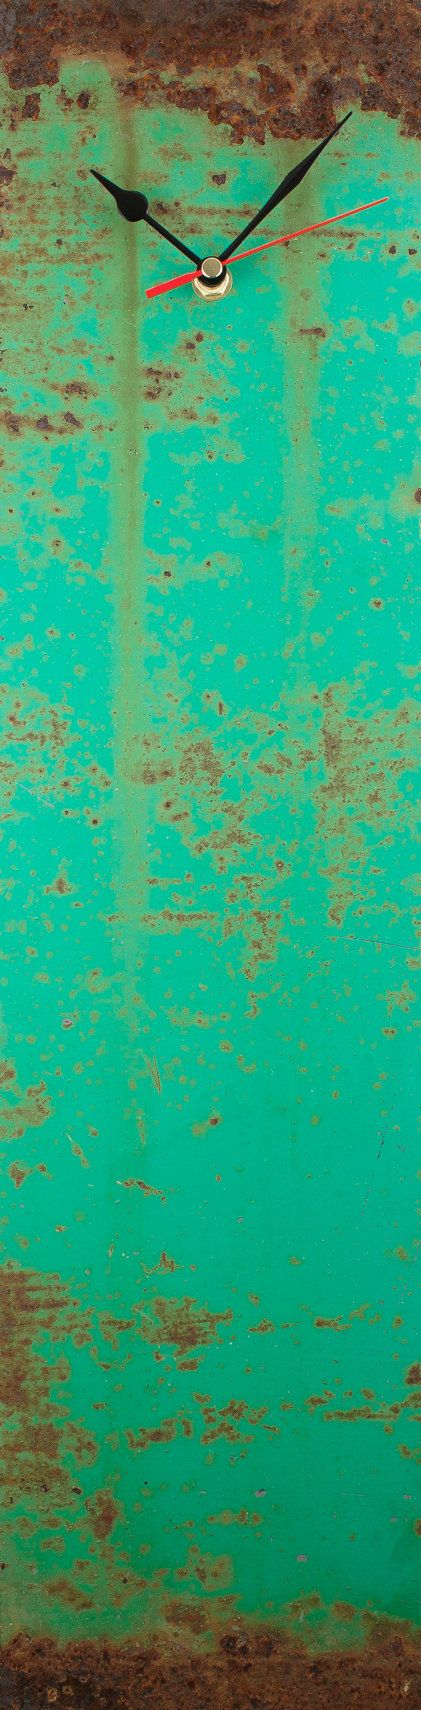 Teal clock Patina clocks Rusty Wall clock by ReformationsUK